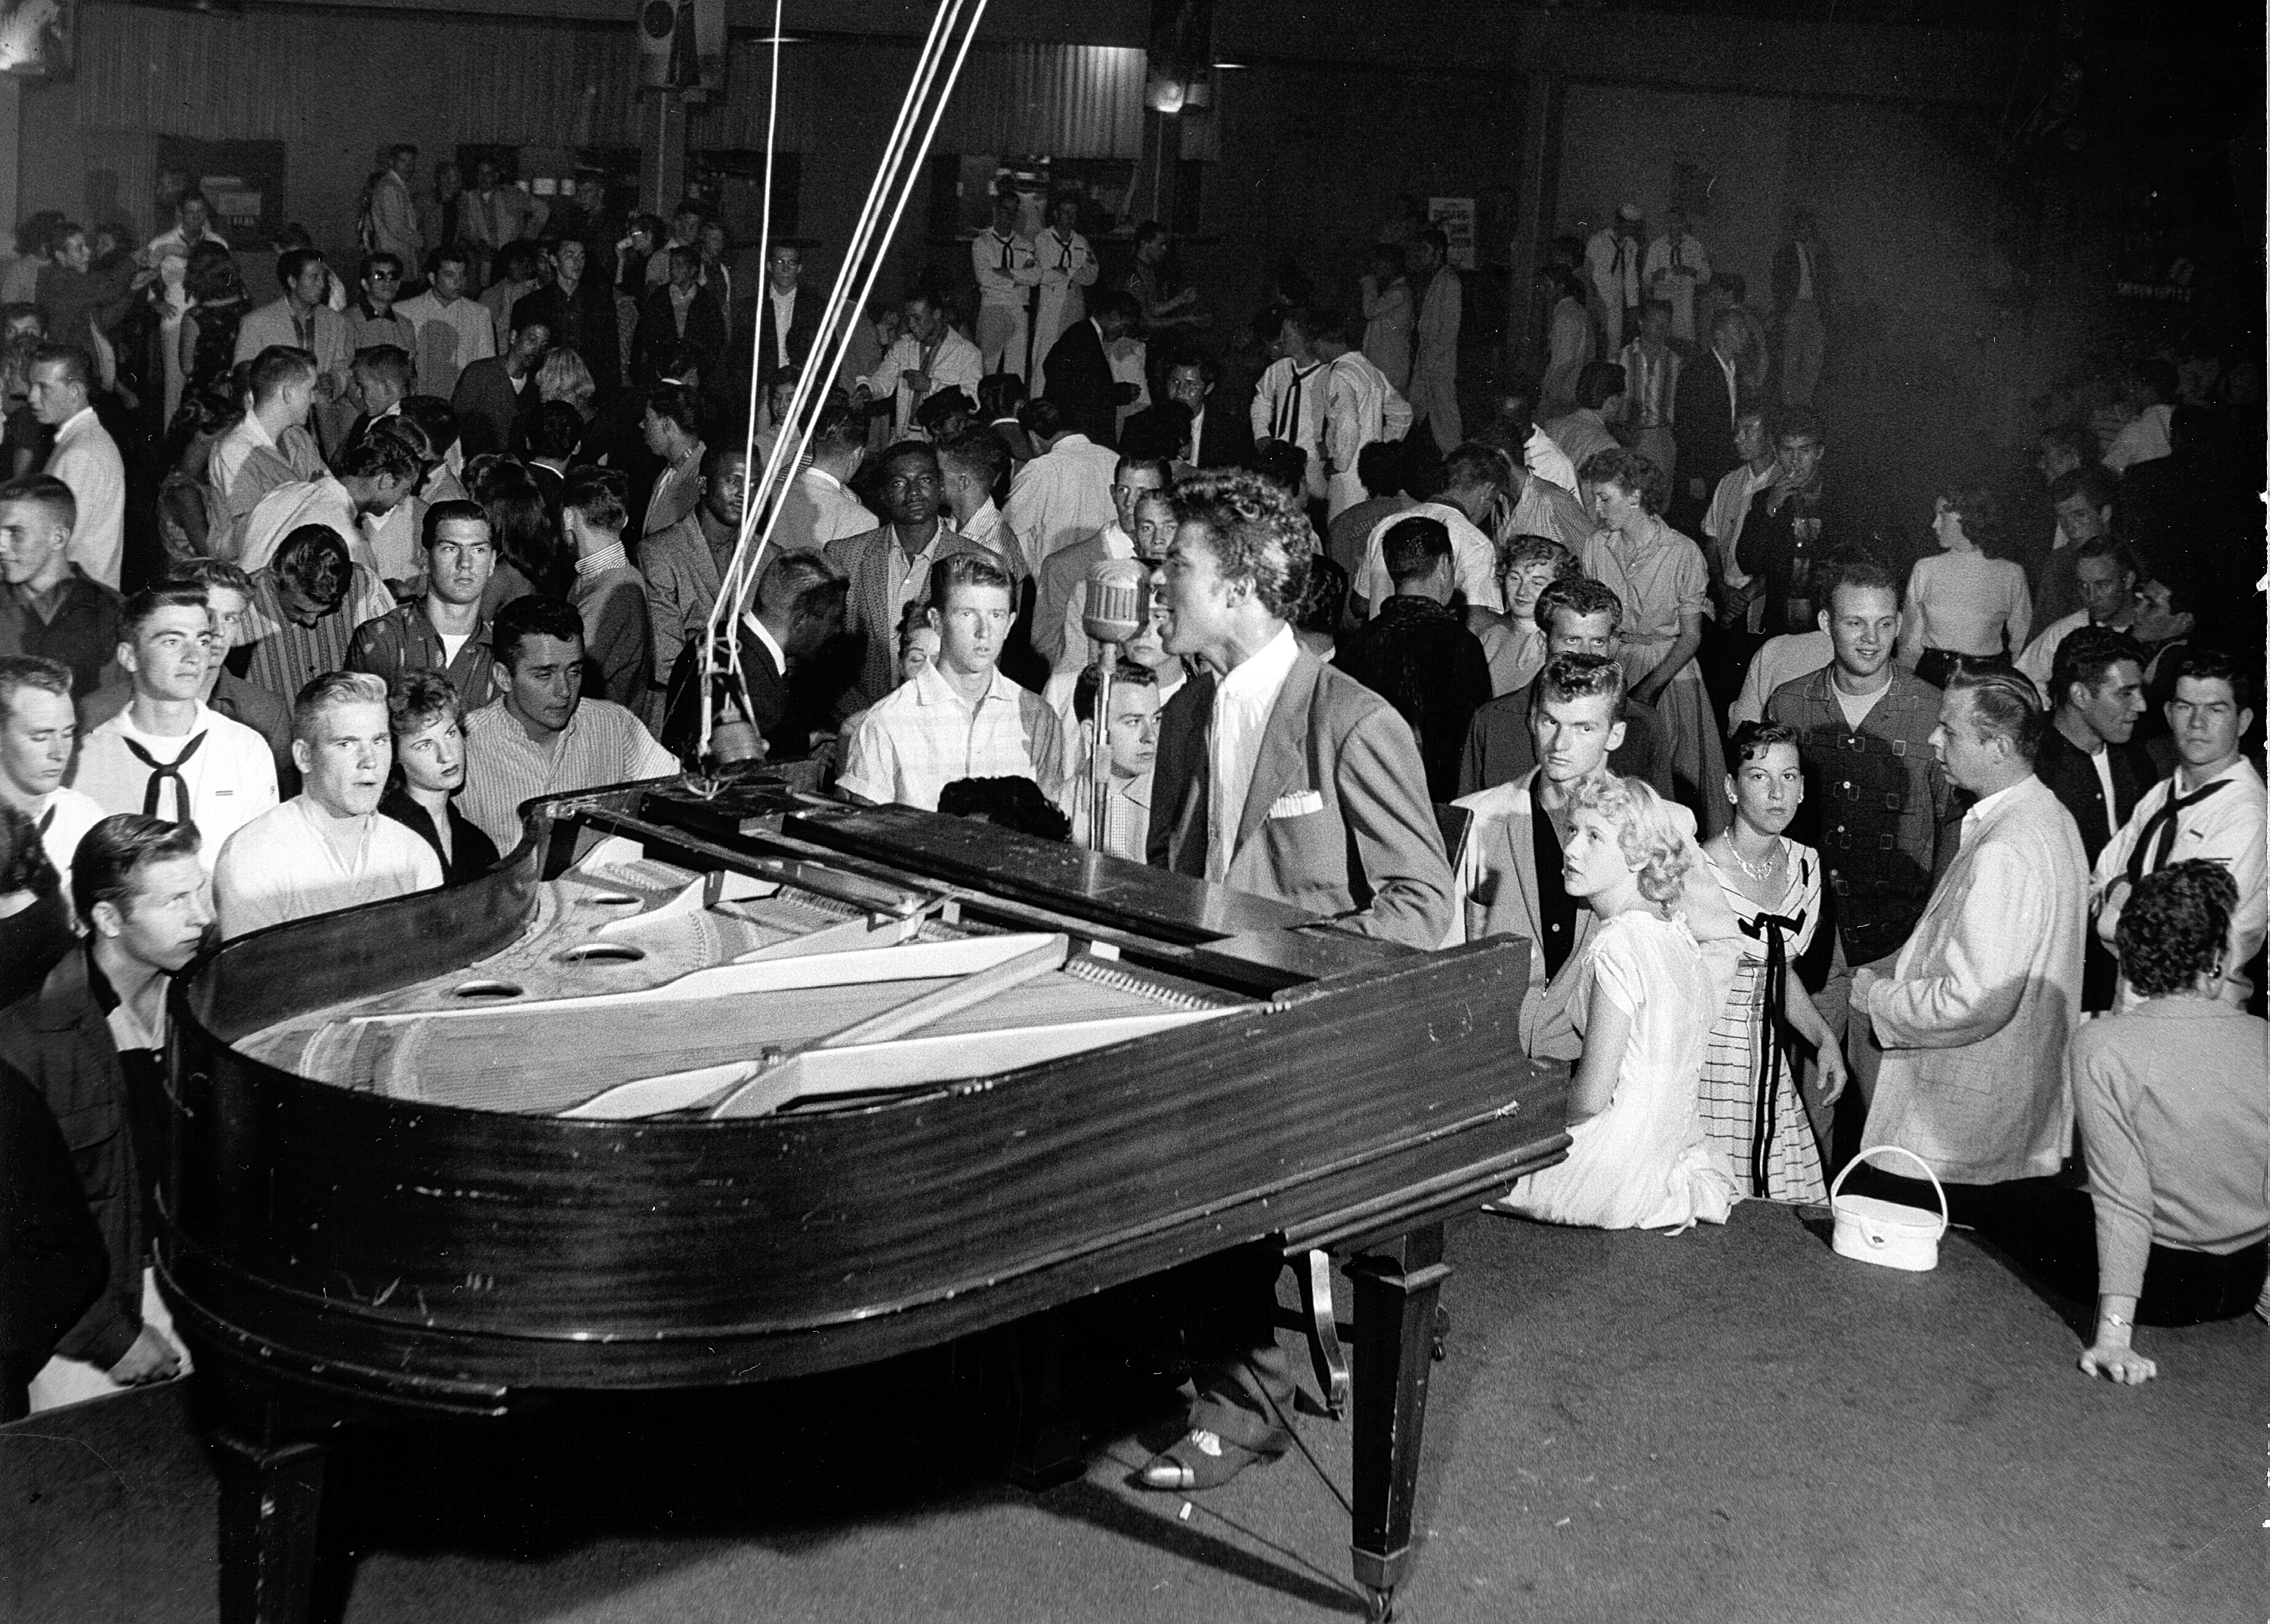 Little Richard performs onstage in circa 1955.